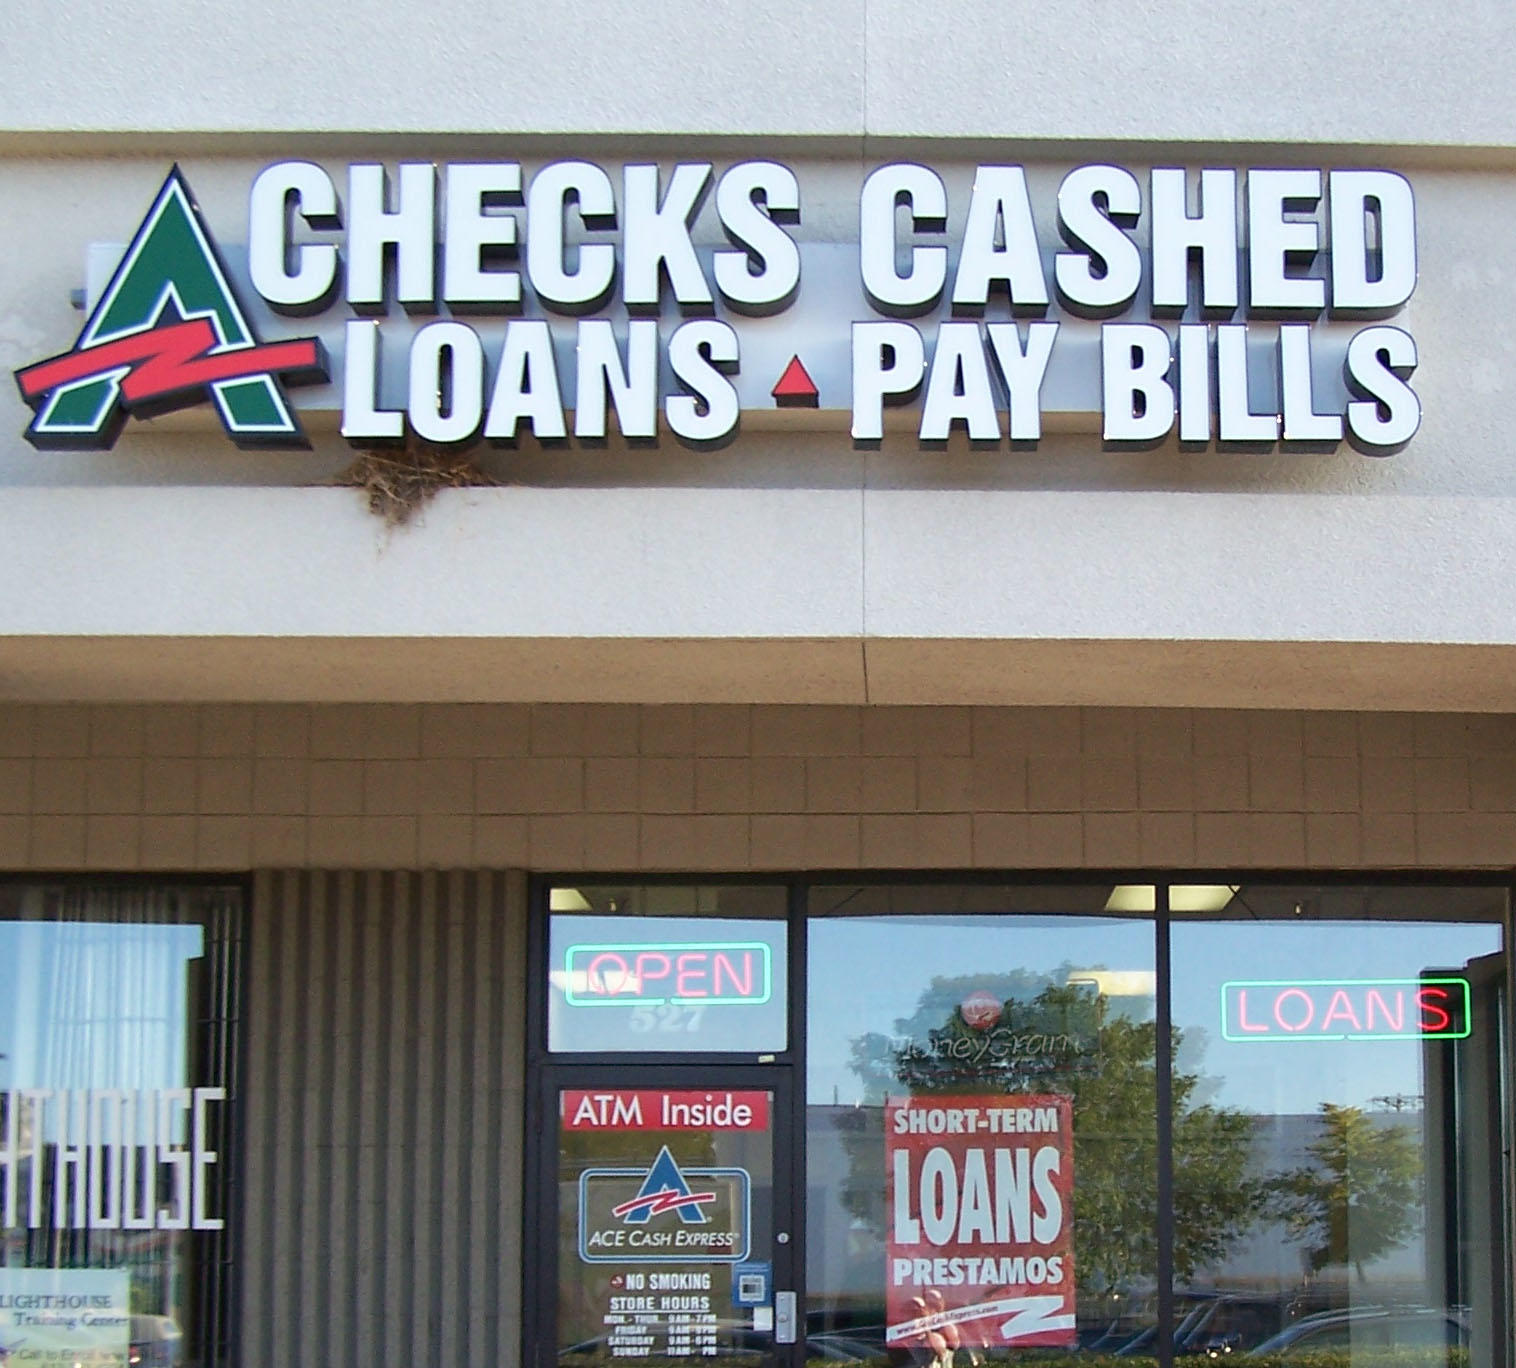 Small payday loans online picture 1